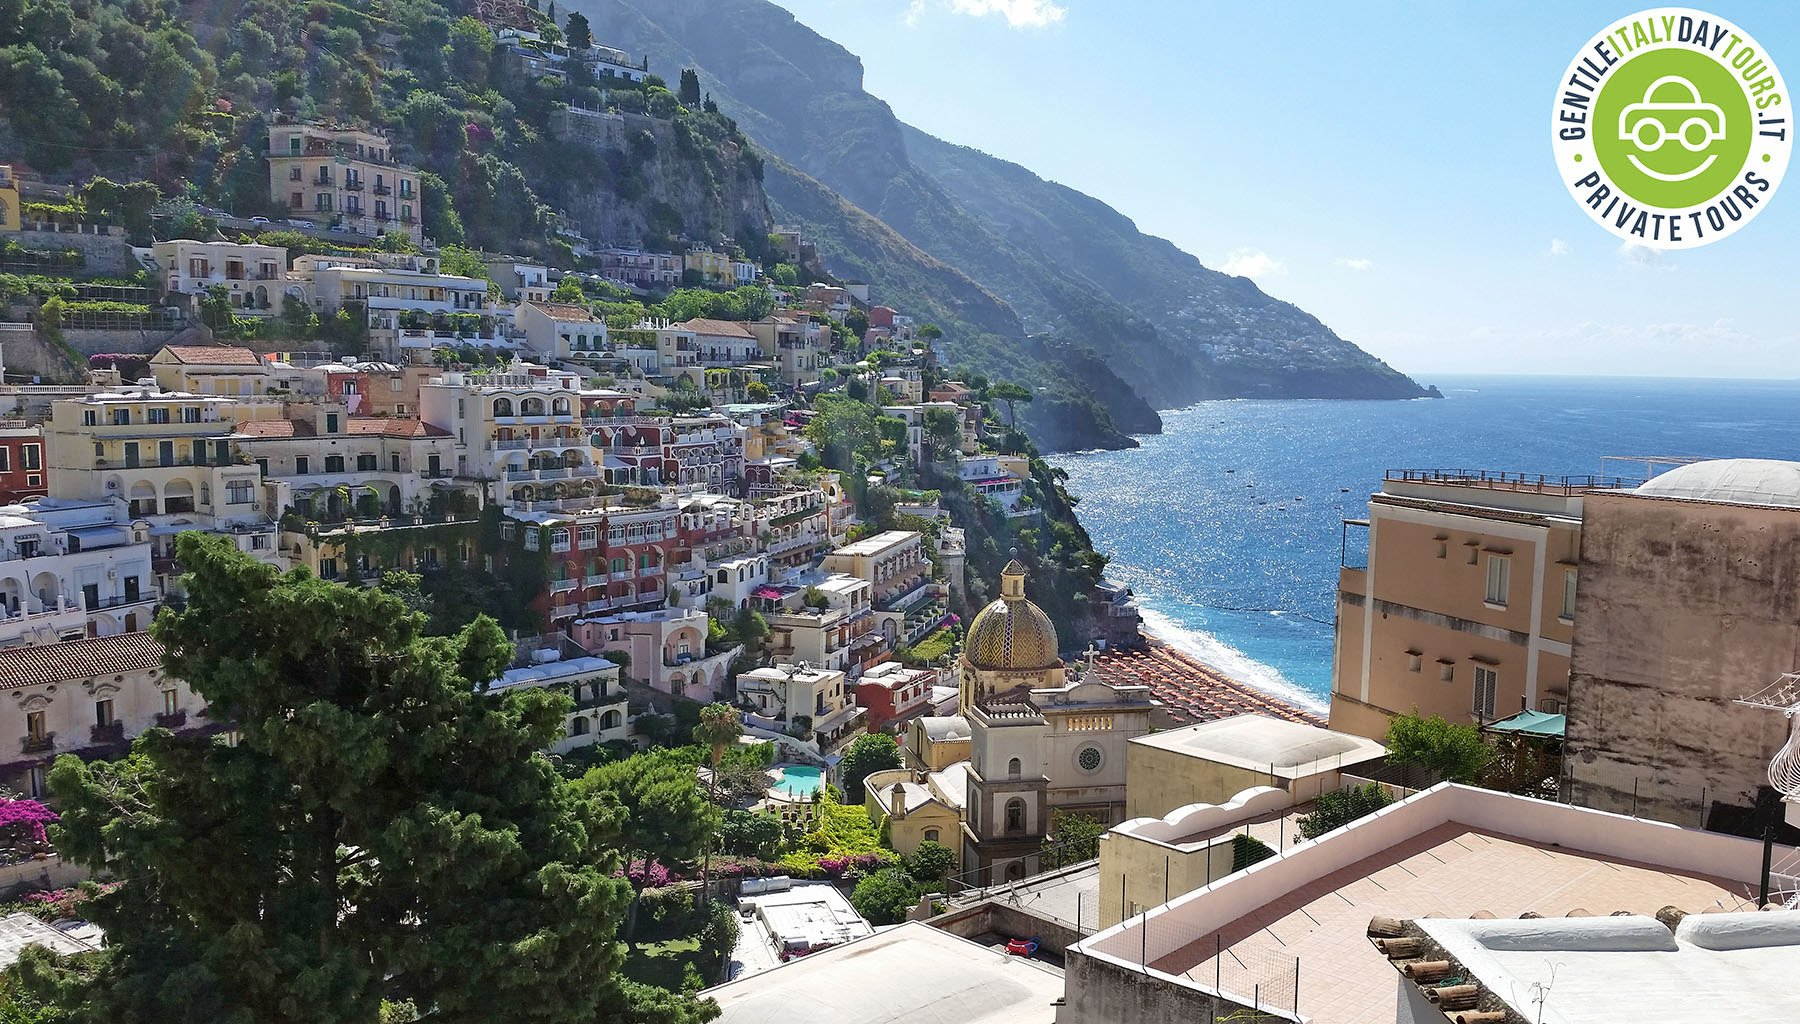 Gentile Italy Day Tours